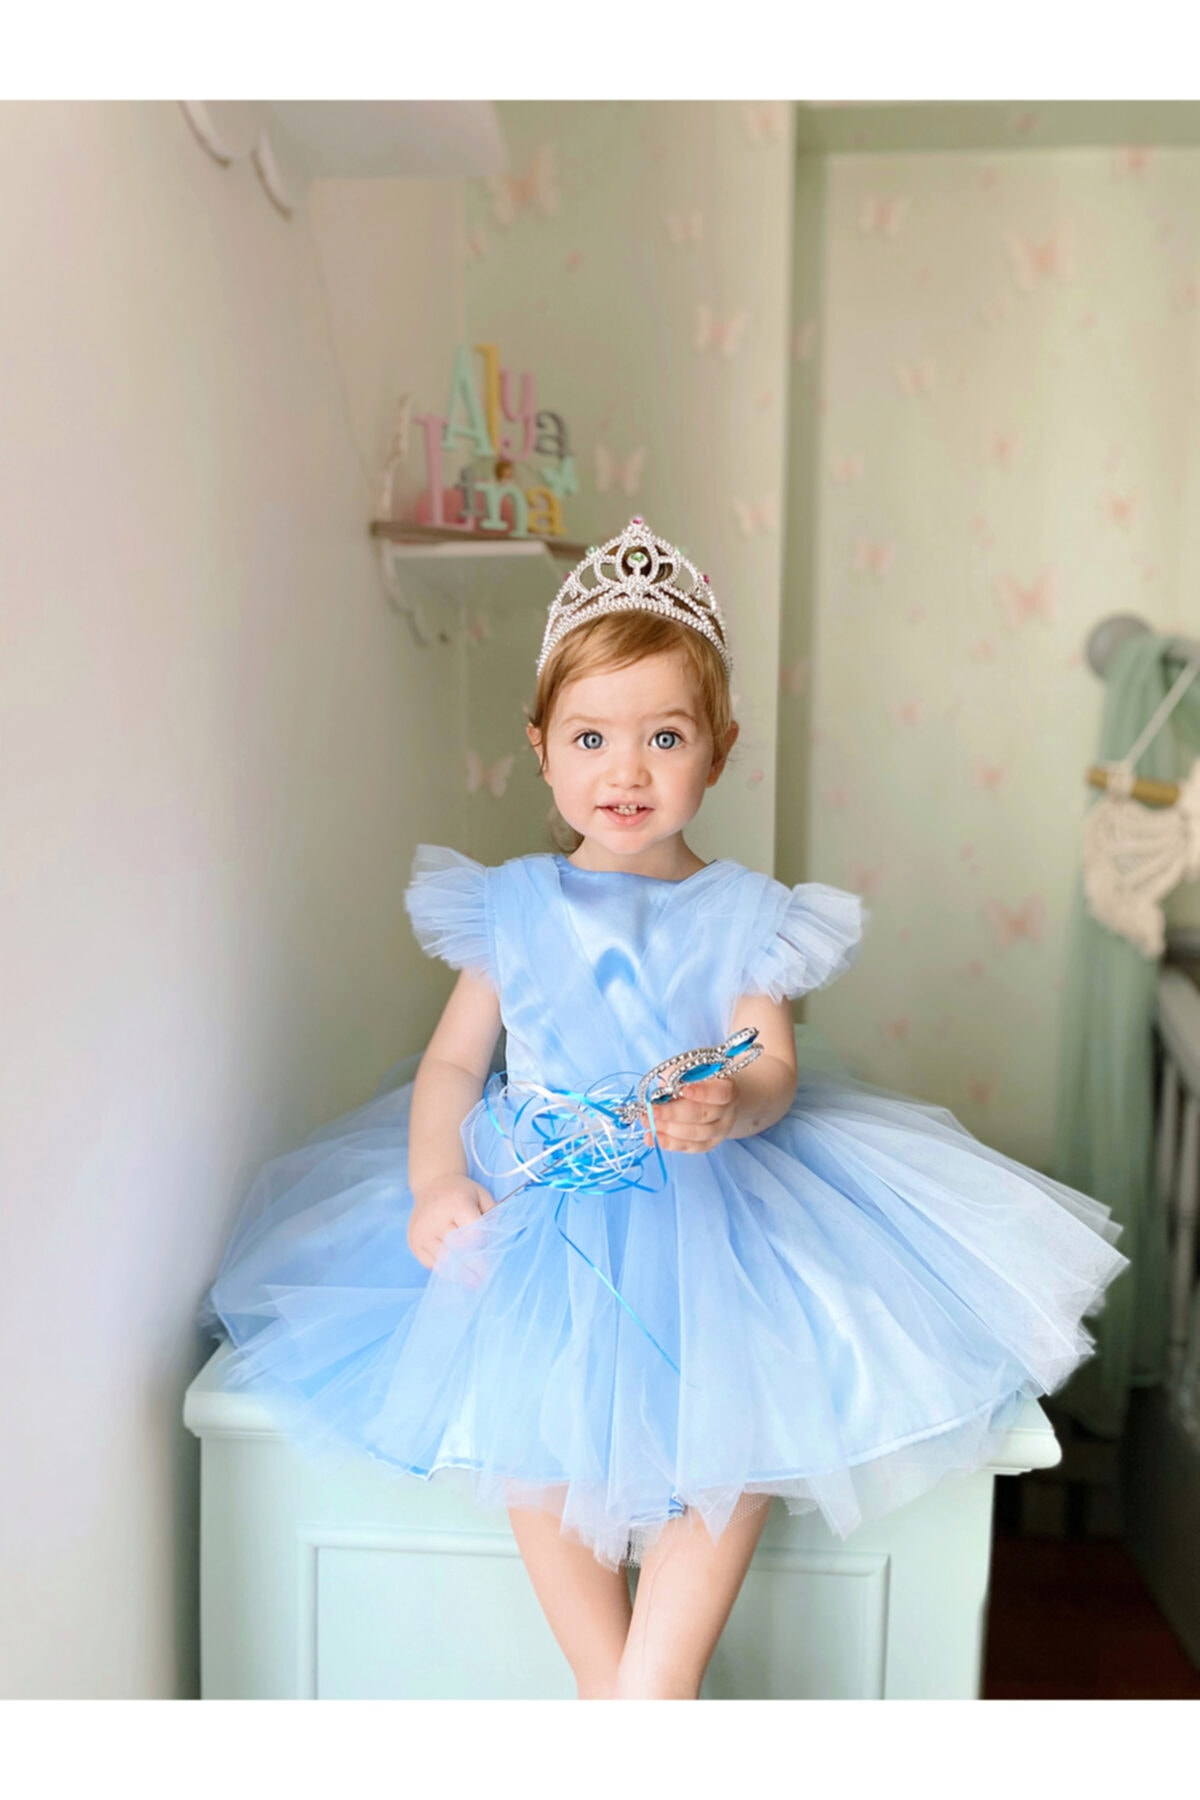 Flaneur Baby Girl Short Sleeve Blue Birthday Dress For Summer 2021 Special Occasion Premium Quality Cotton Lining